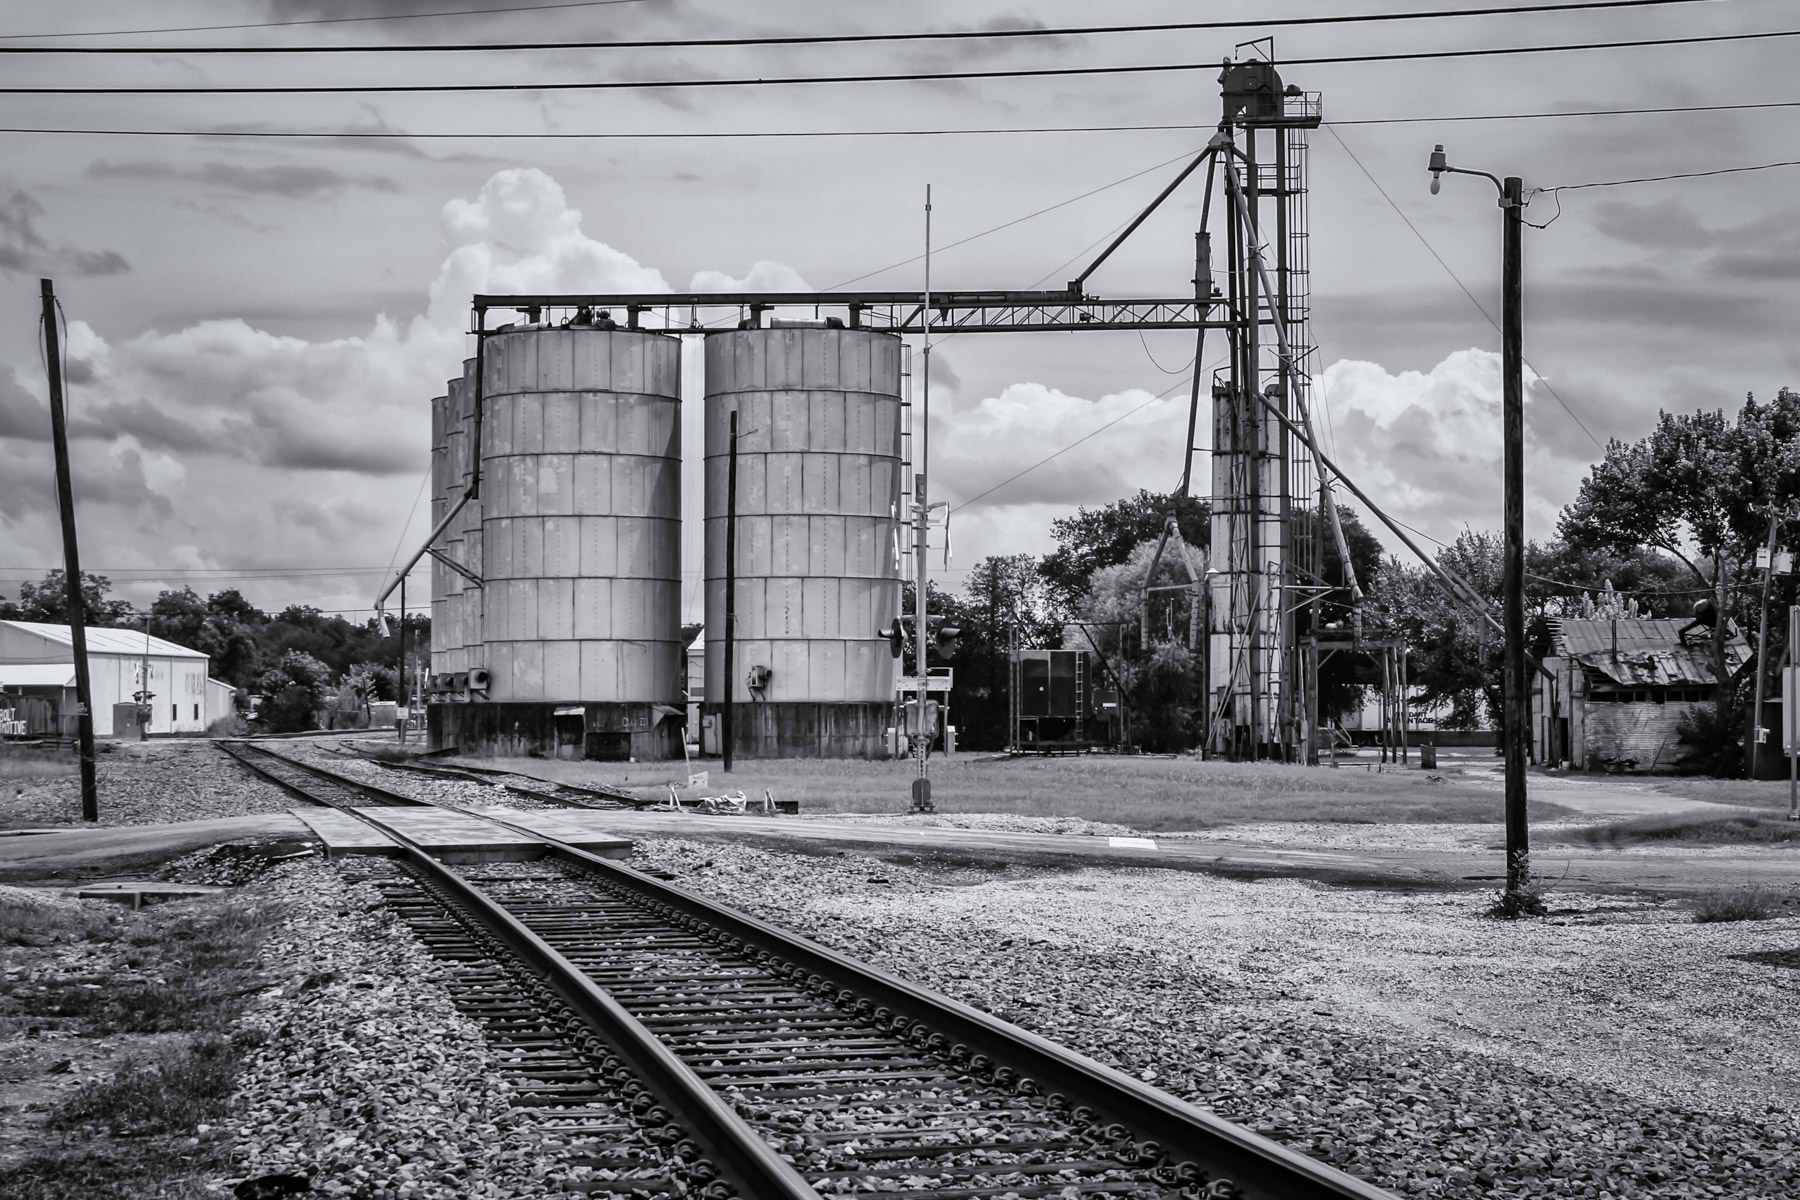 Silos and railroad tracks in Waxahachie, Texas.